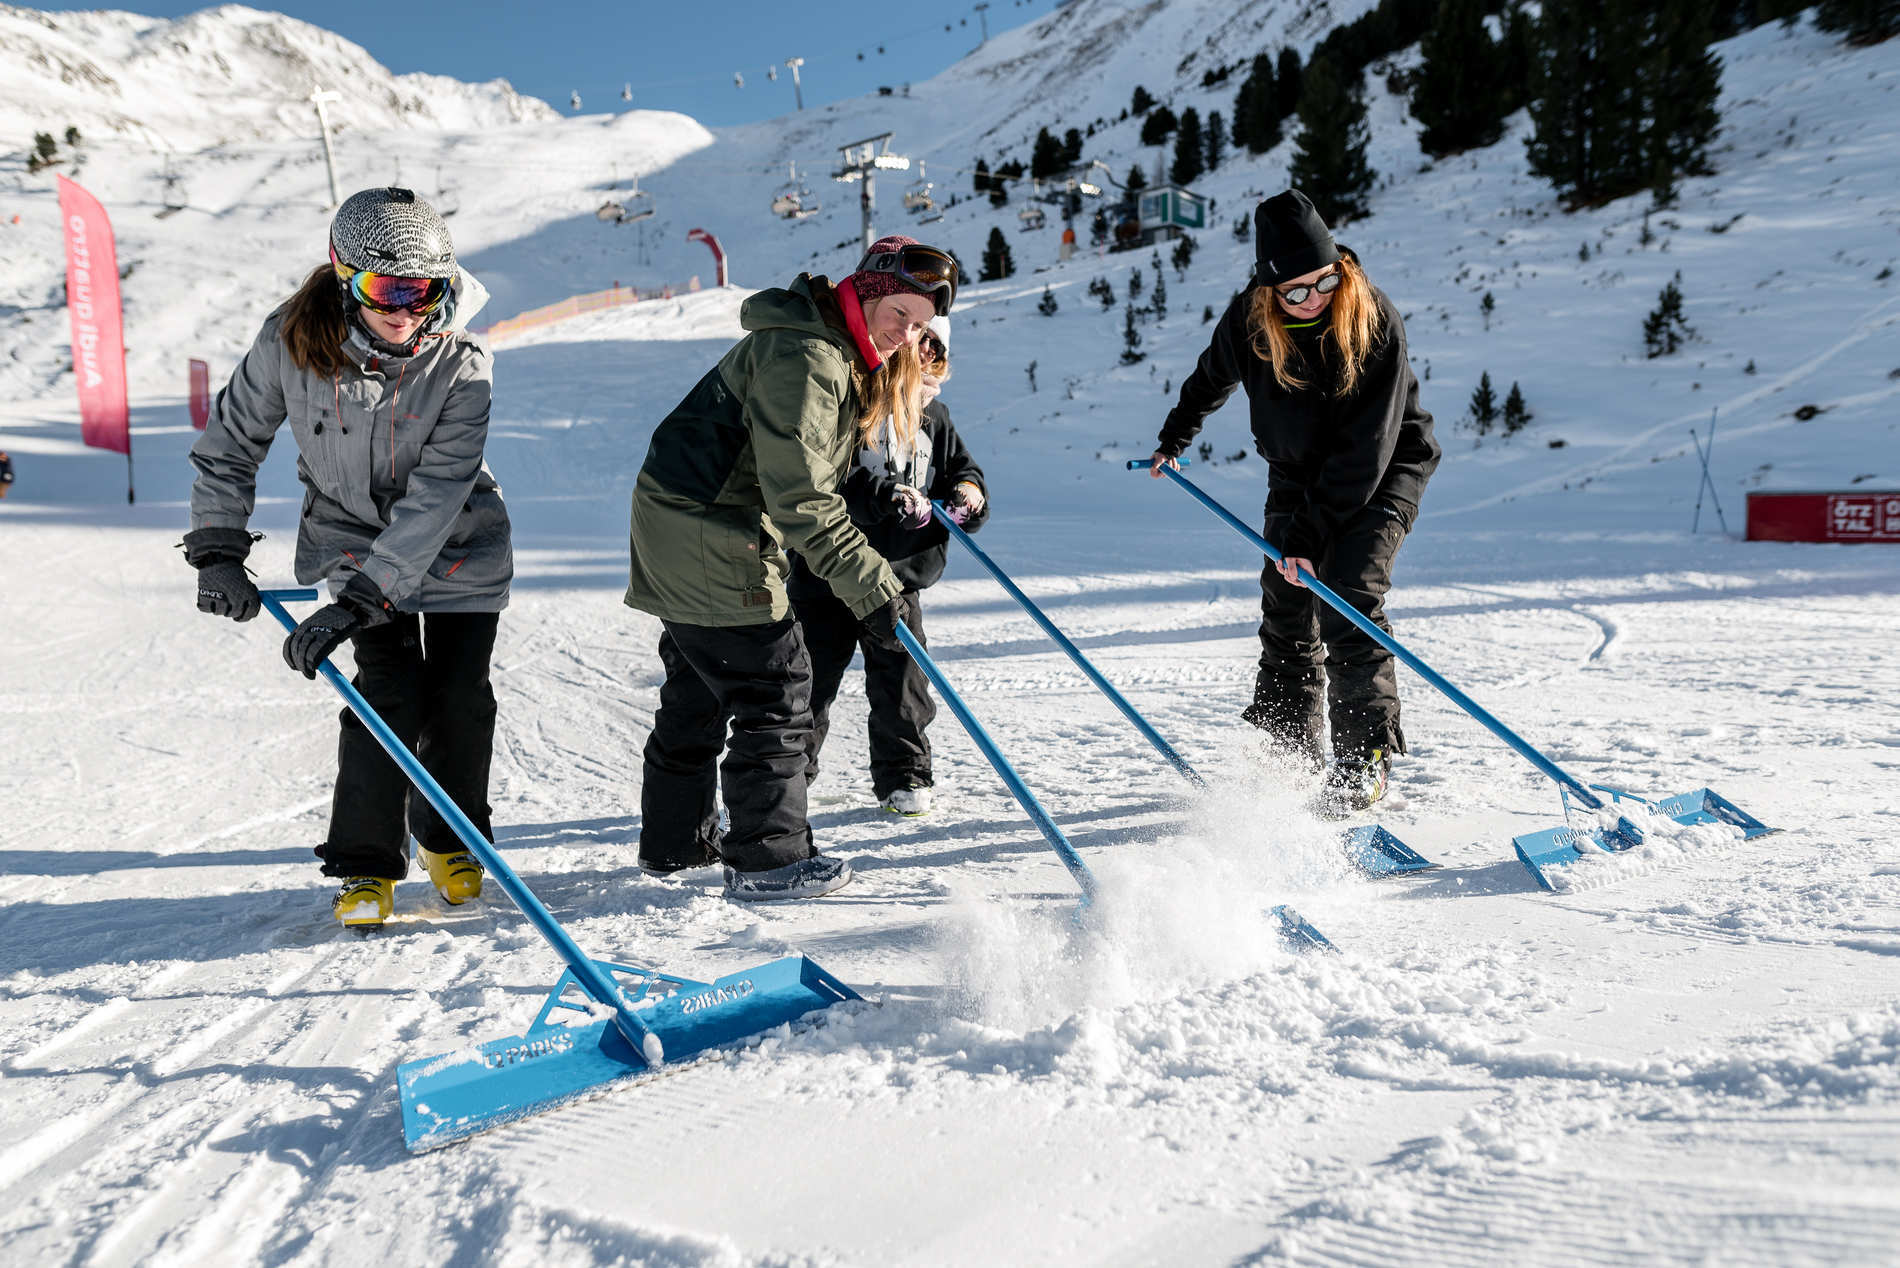 web obergurgl 29 01 2017 lifestyle fs sb christian riefenberg qparks 27